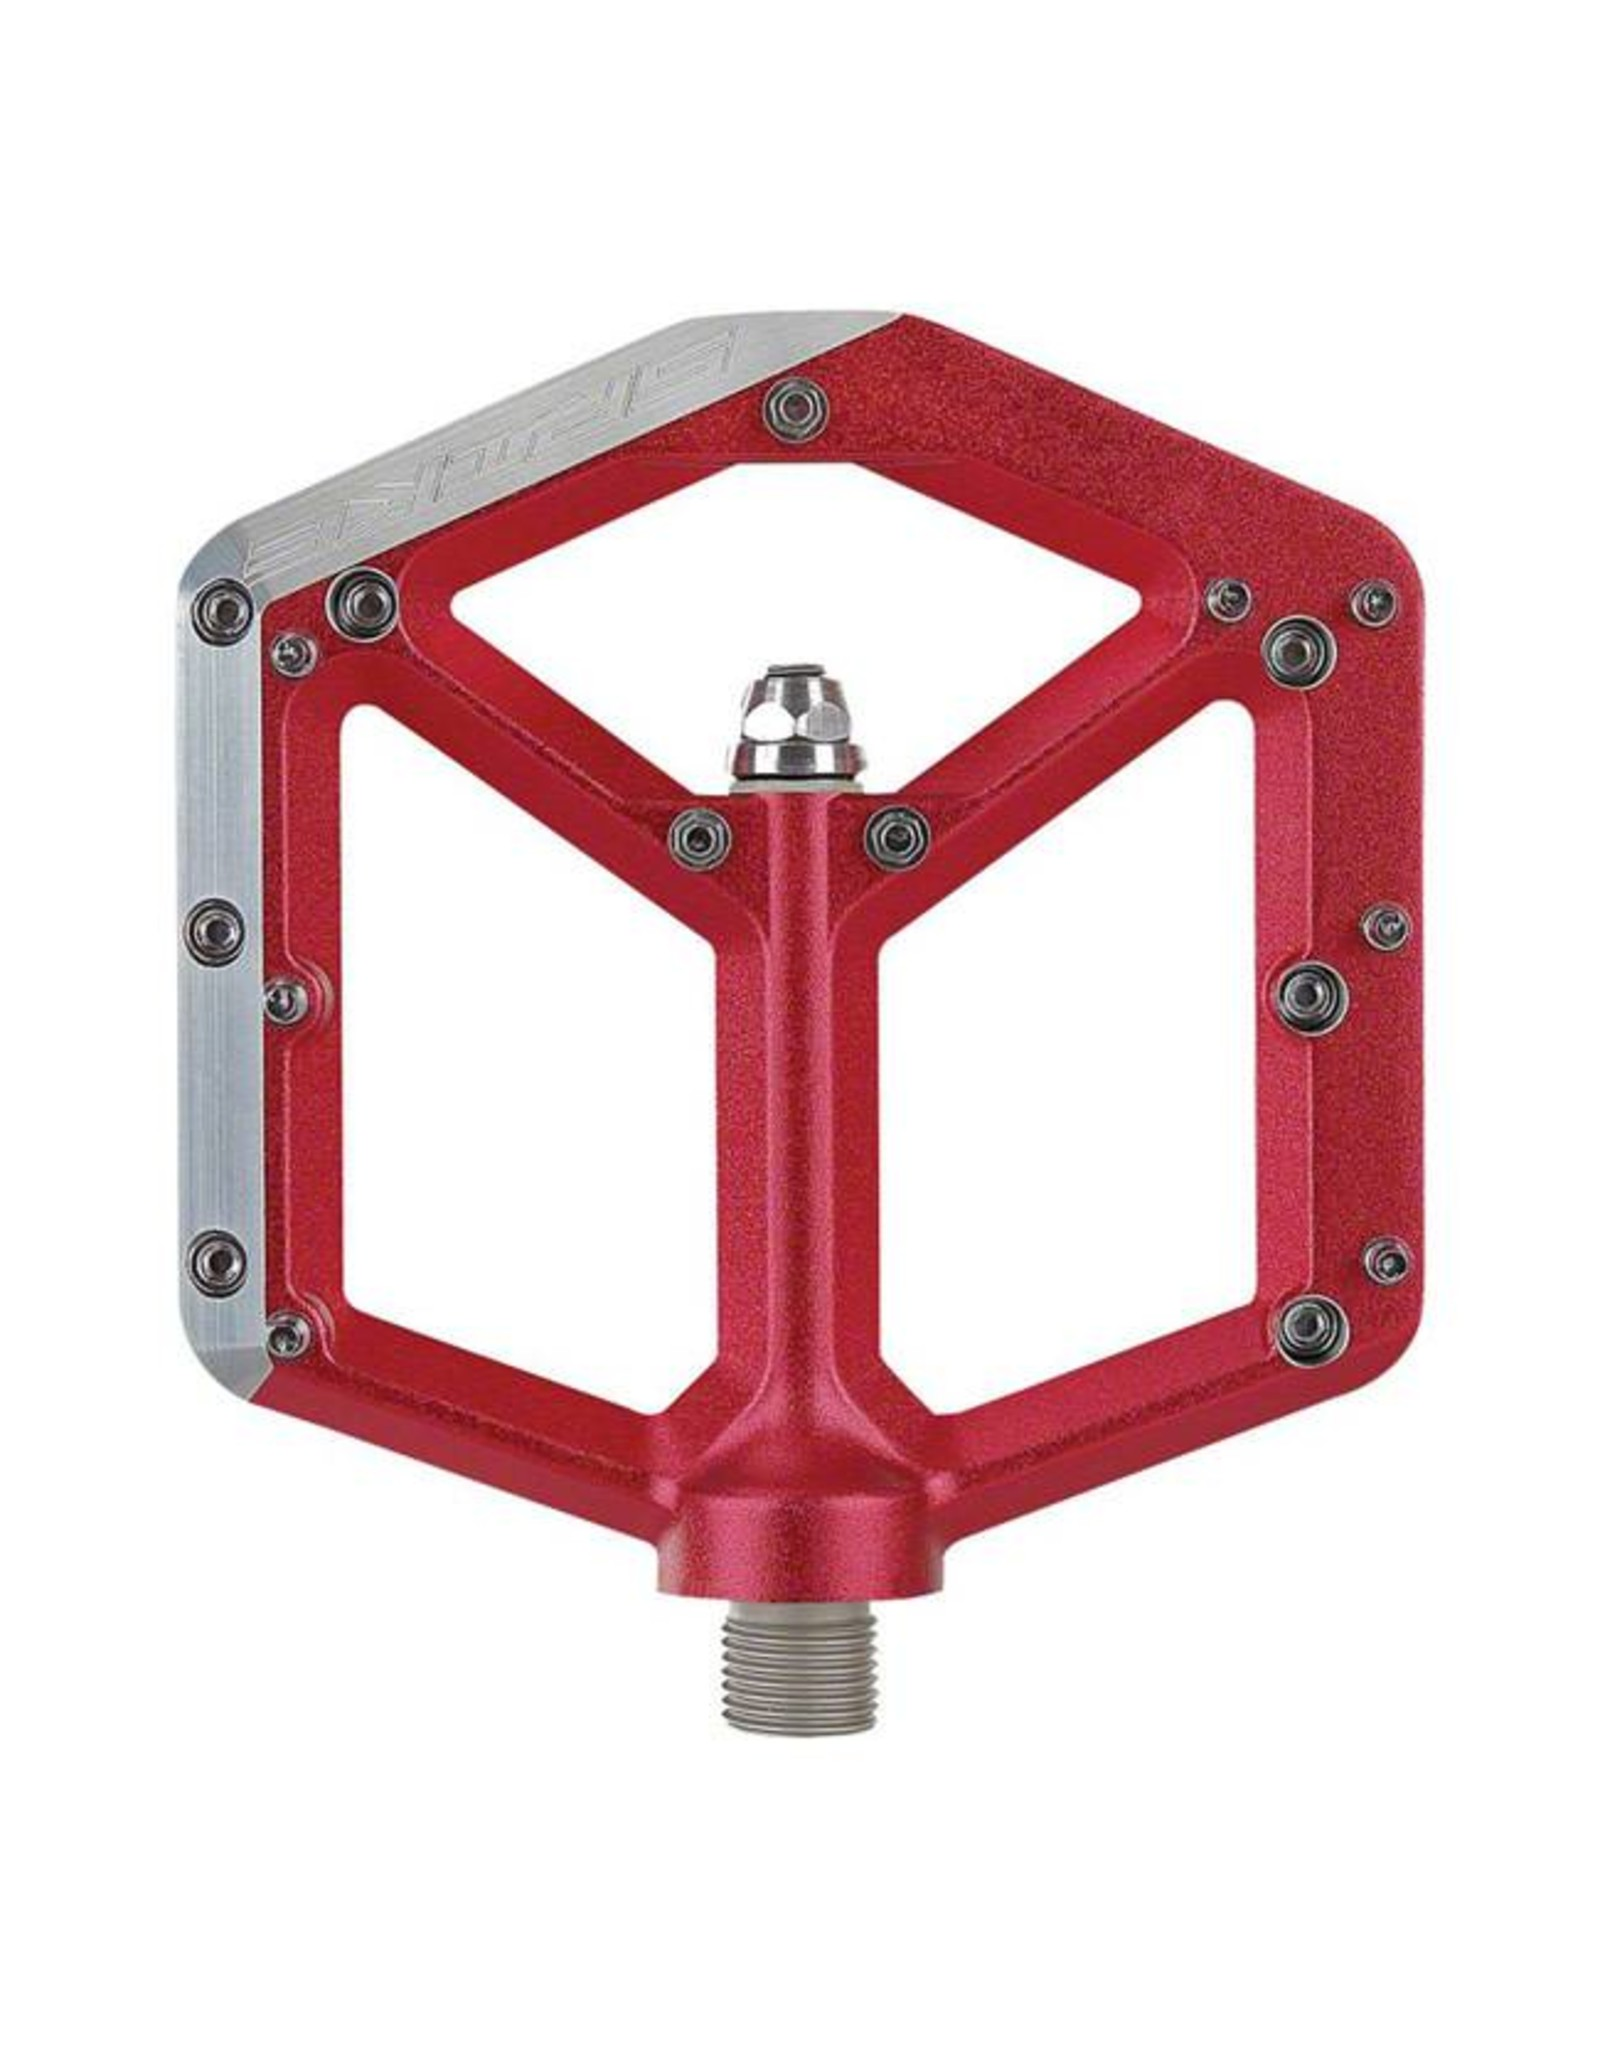 Spank Spank Spike Flat DH Pedal, Red